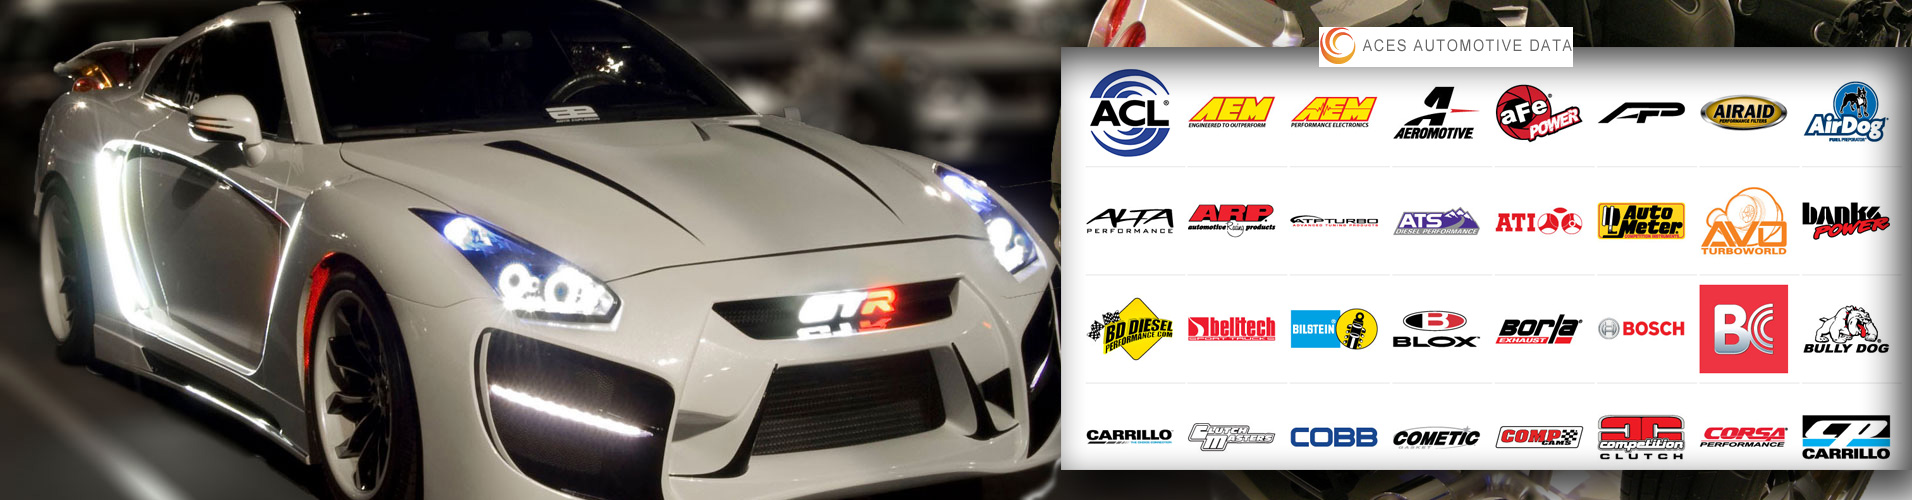 ACES Automotive Data 418 Brands Offer